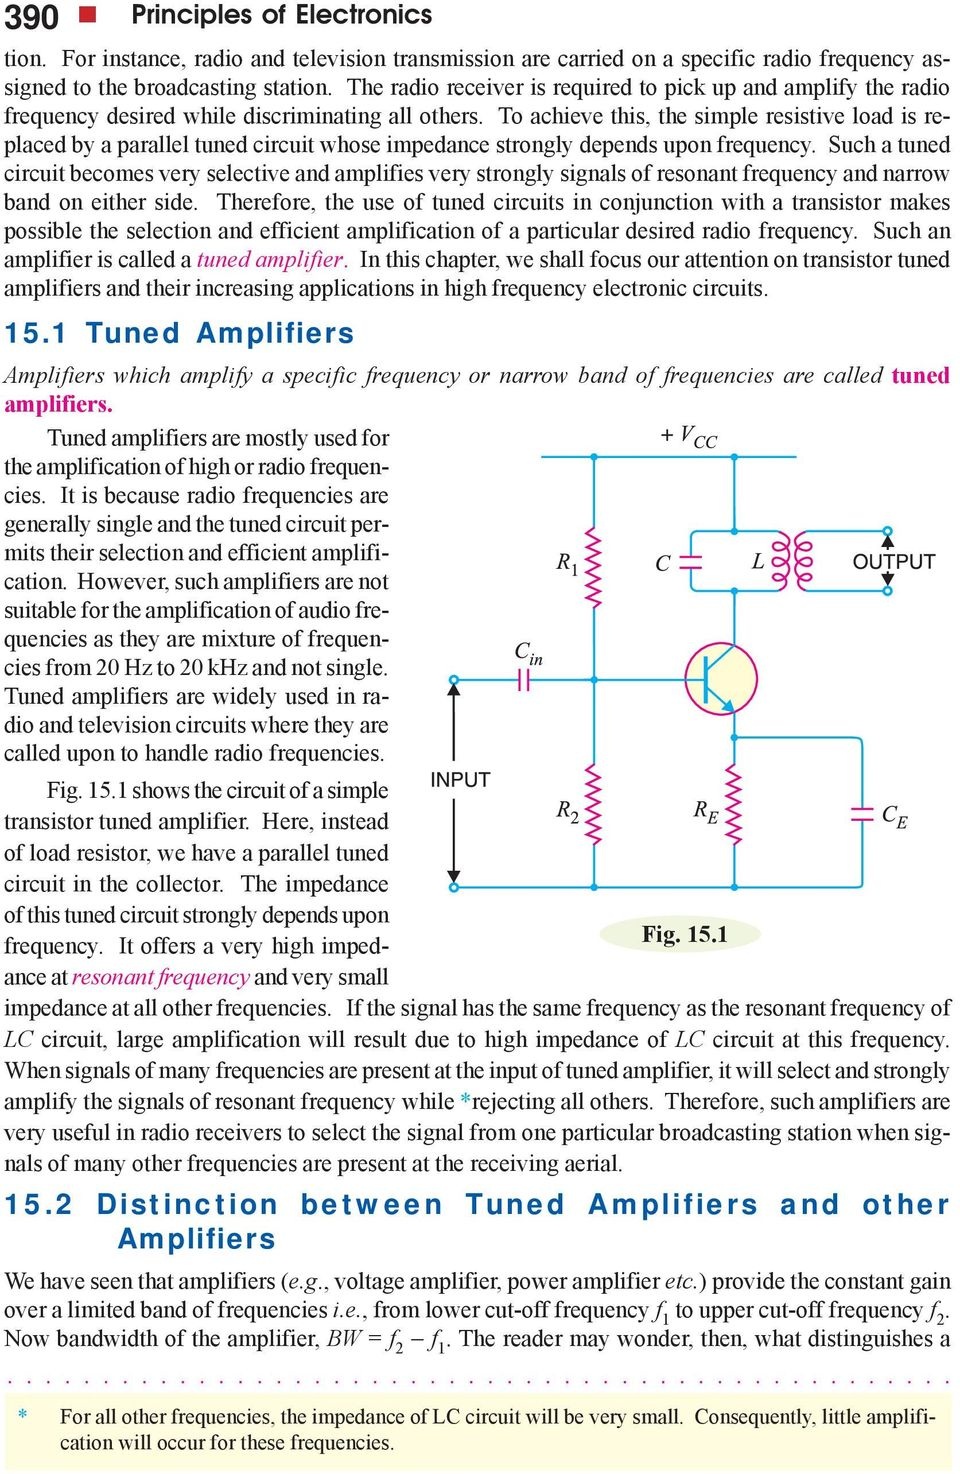 Transistor Tuned Amplifiers Pdf Basic Principles Of The Lc Resonance Circuit To Achieve This Simple Resistive Load Is Replaced By A Parallel Whose